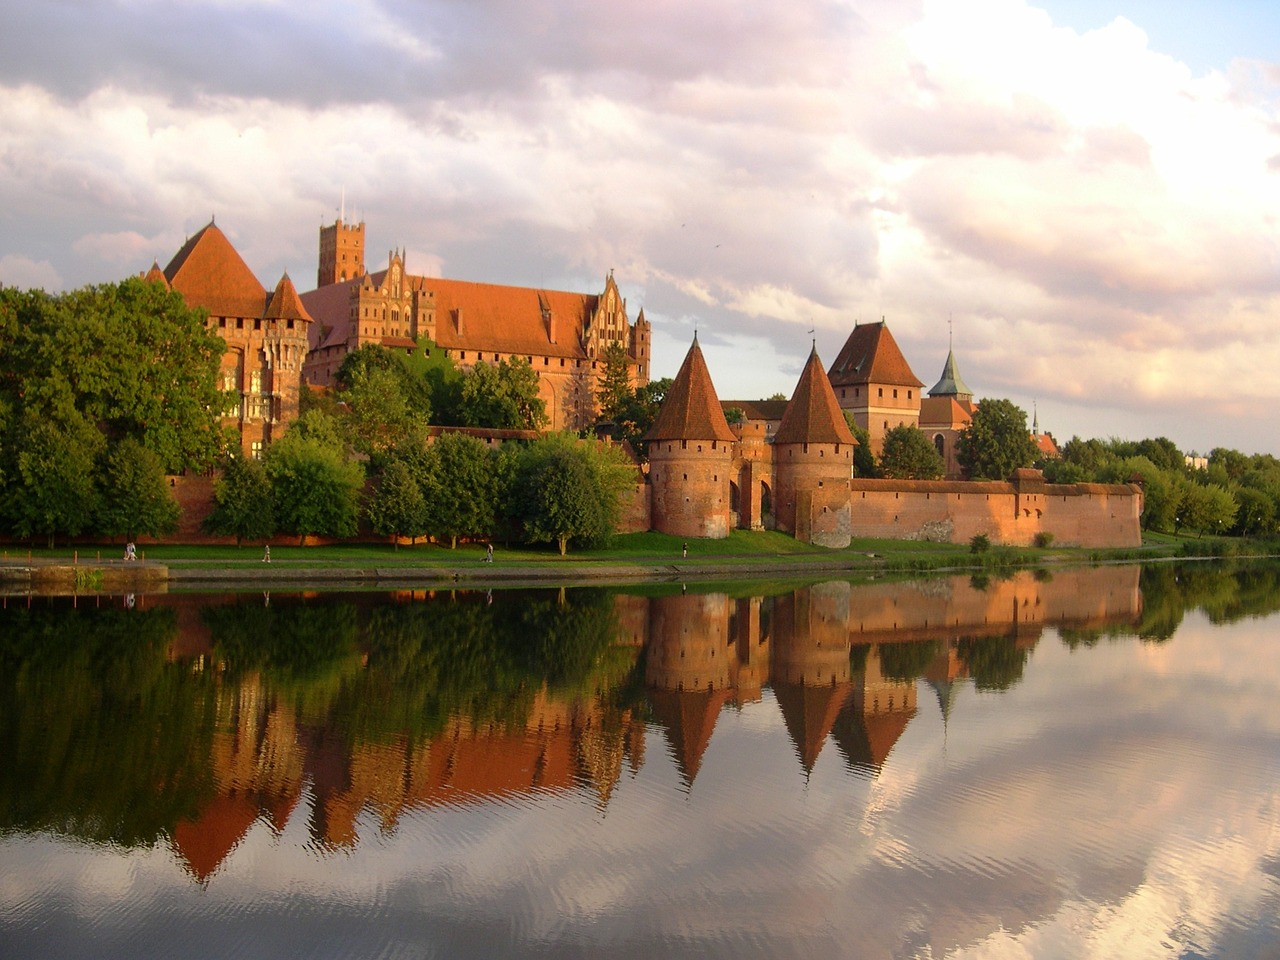 The castle of the Teutonic Order of the Crusaders Malbork Zamek Malbork